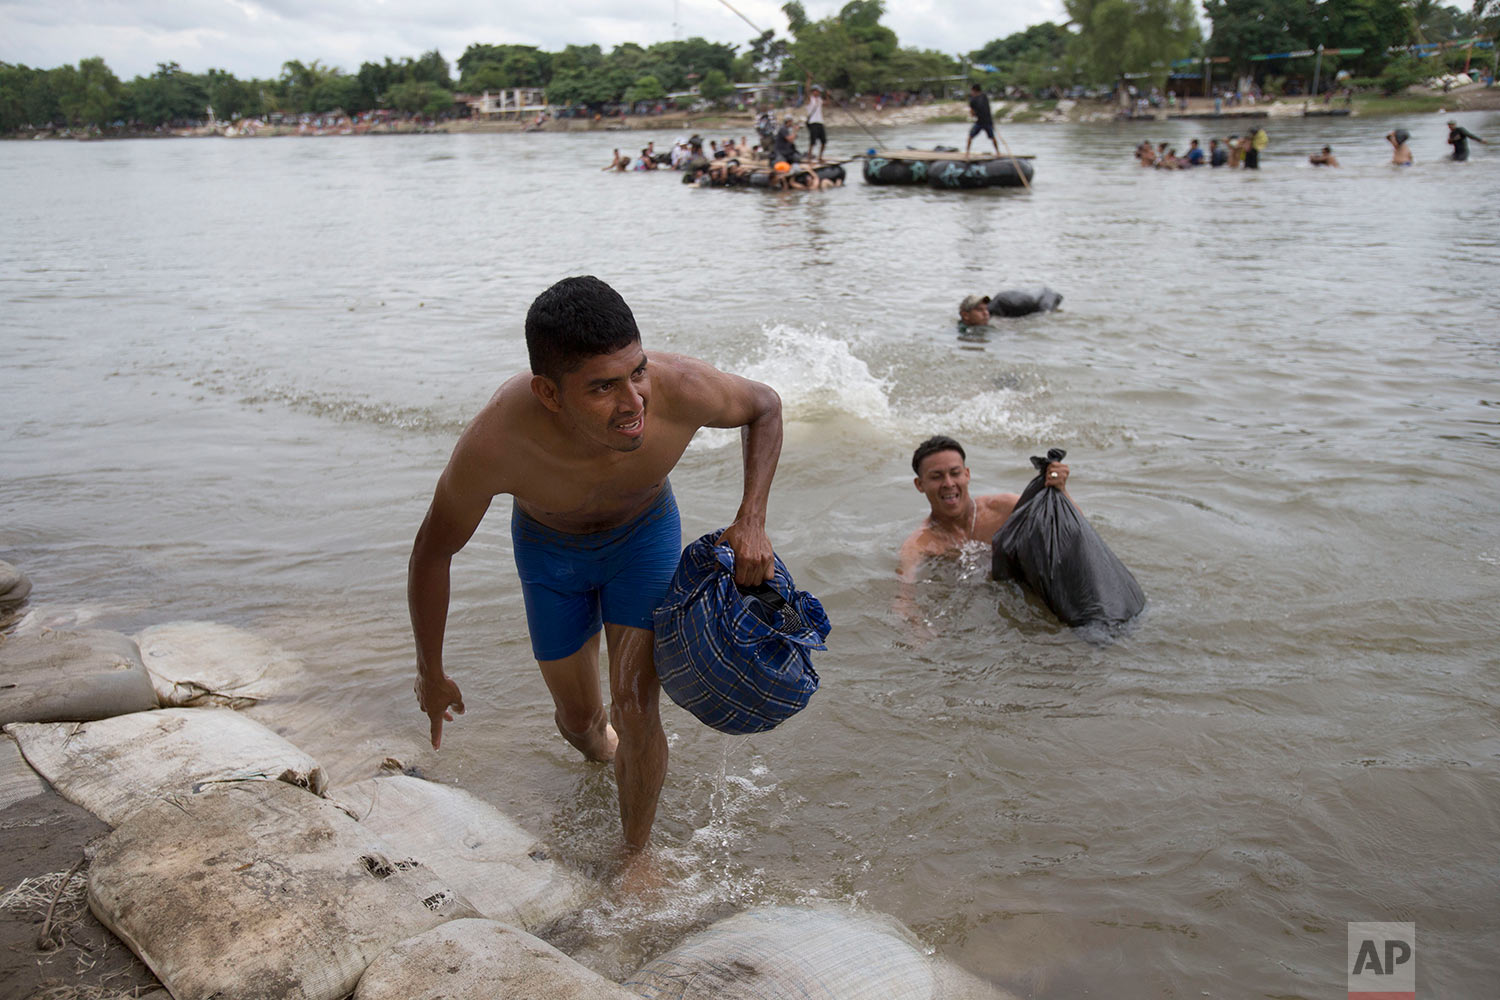 Central American migrants reach the shore on the Mexican side of the Suchiate River after wading across, on the the border between Guatemala and Mexico, in Ciudad Hidalgo, Mexico, Saturday, Oct. 20, 2018. (AP Photo/Moises Castillo)